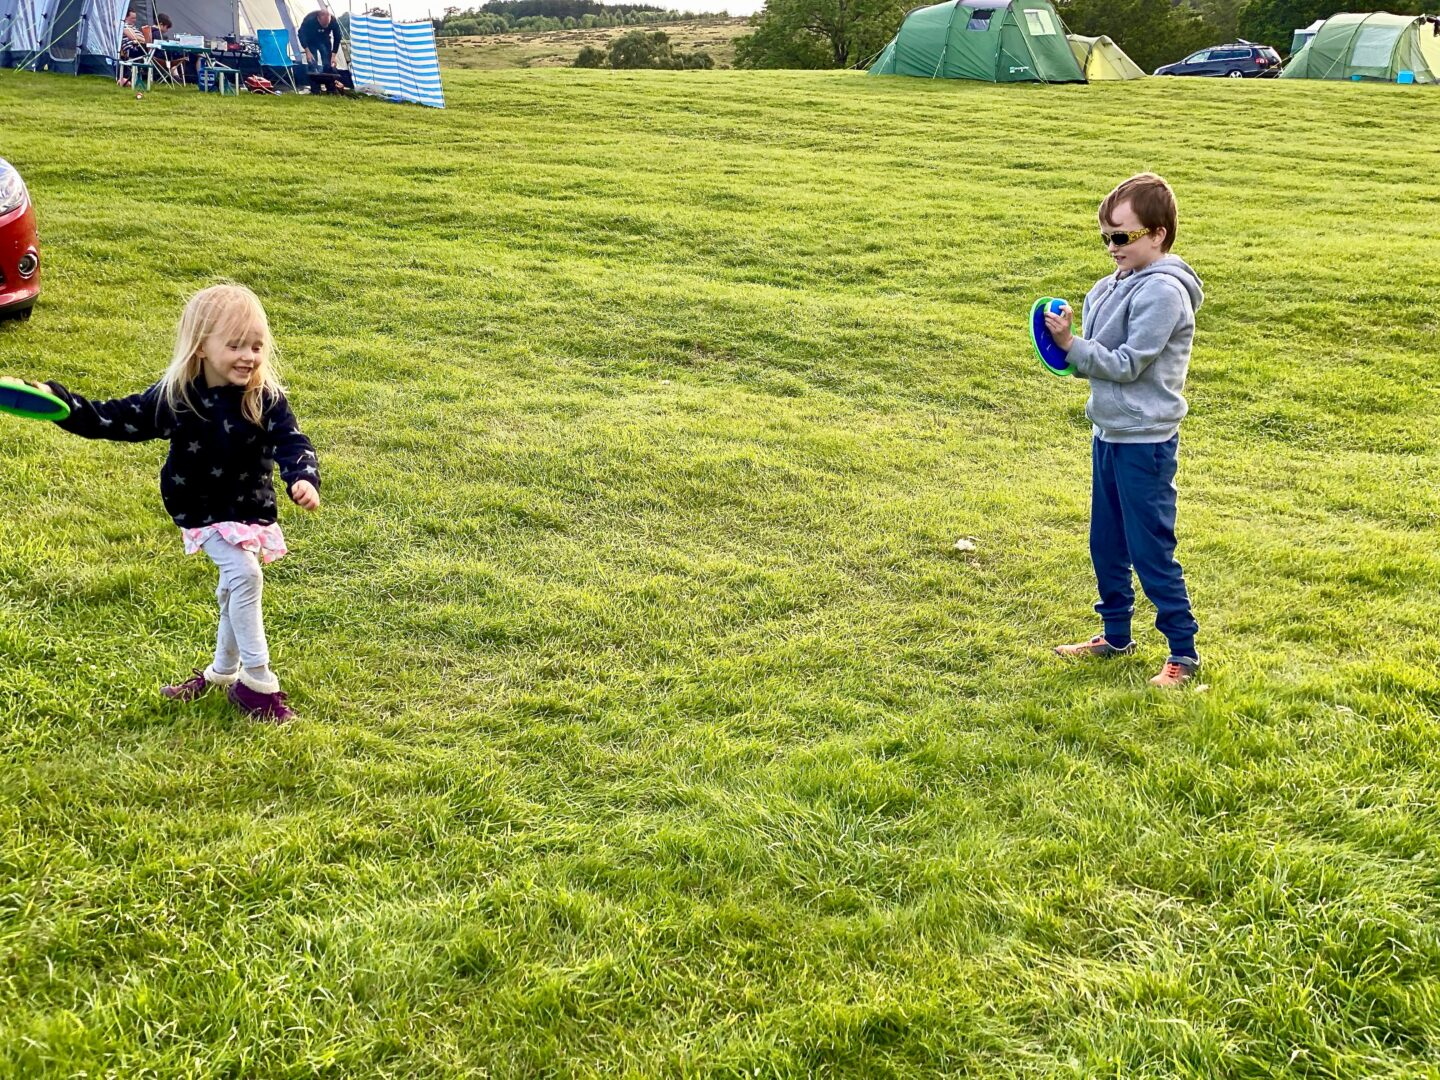 two children playing catch on a campsite